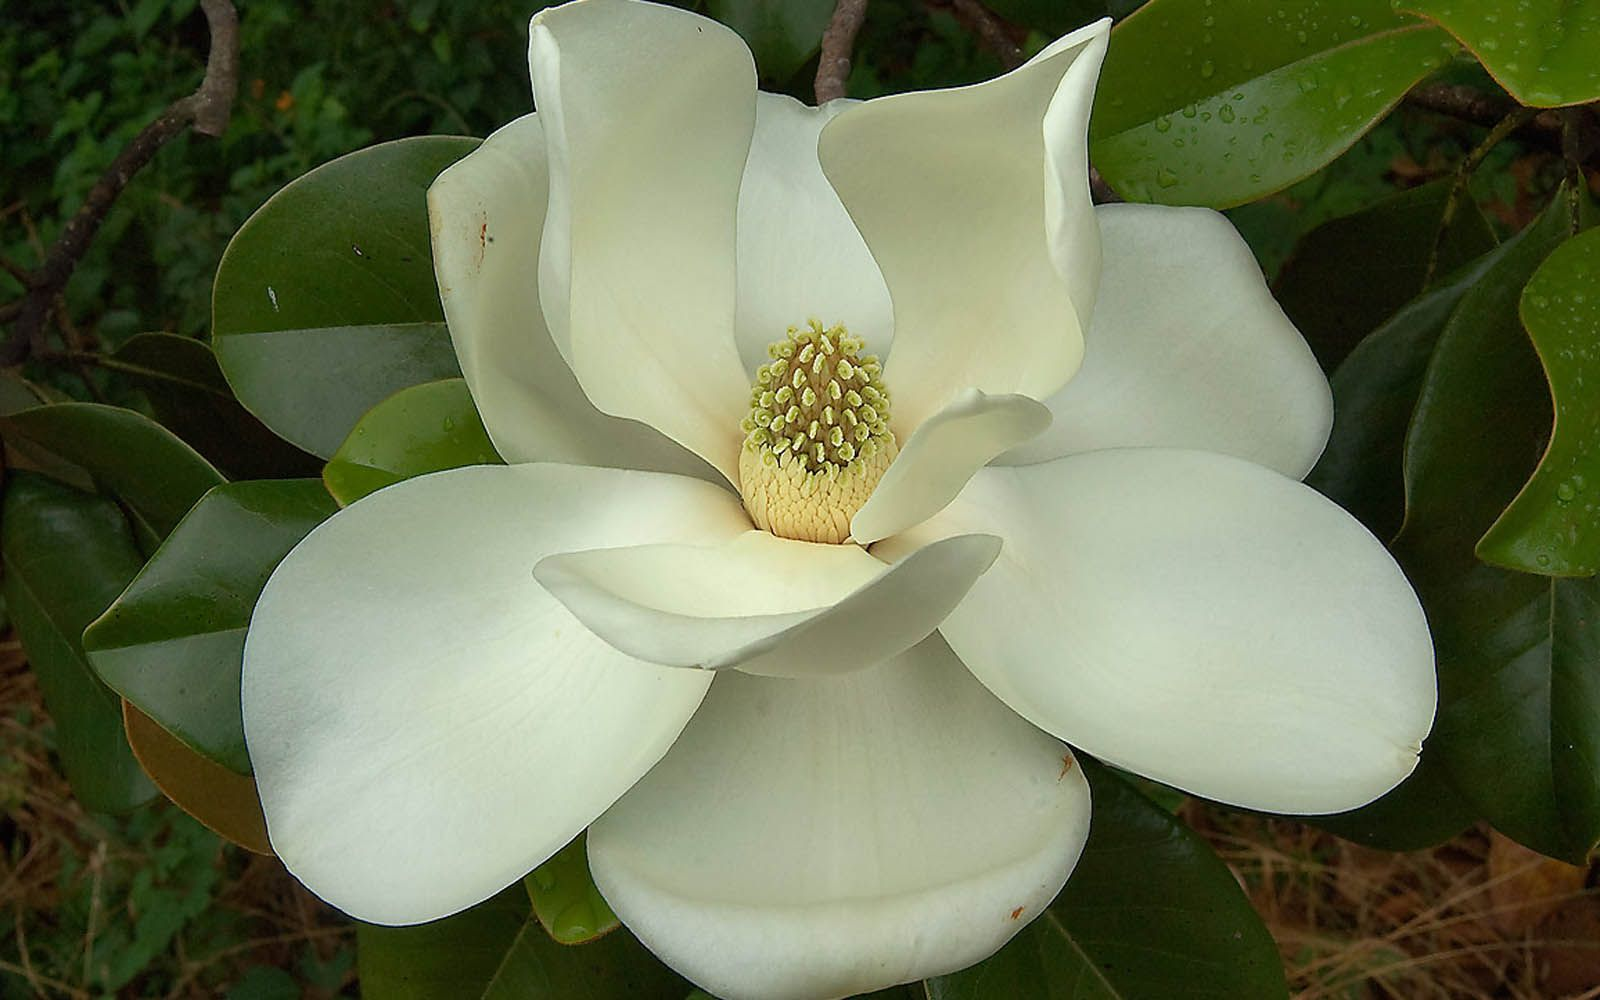 Pin By Willie Wood On Cotton And Magnolia Magnolia Flower Flower Essences Flower Photos